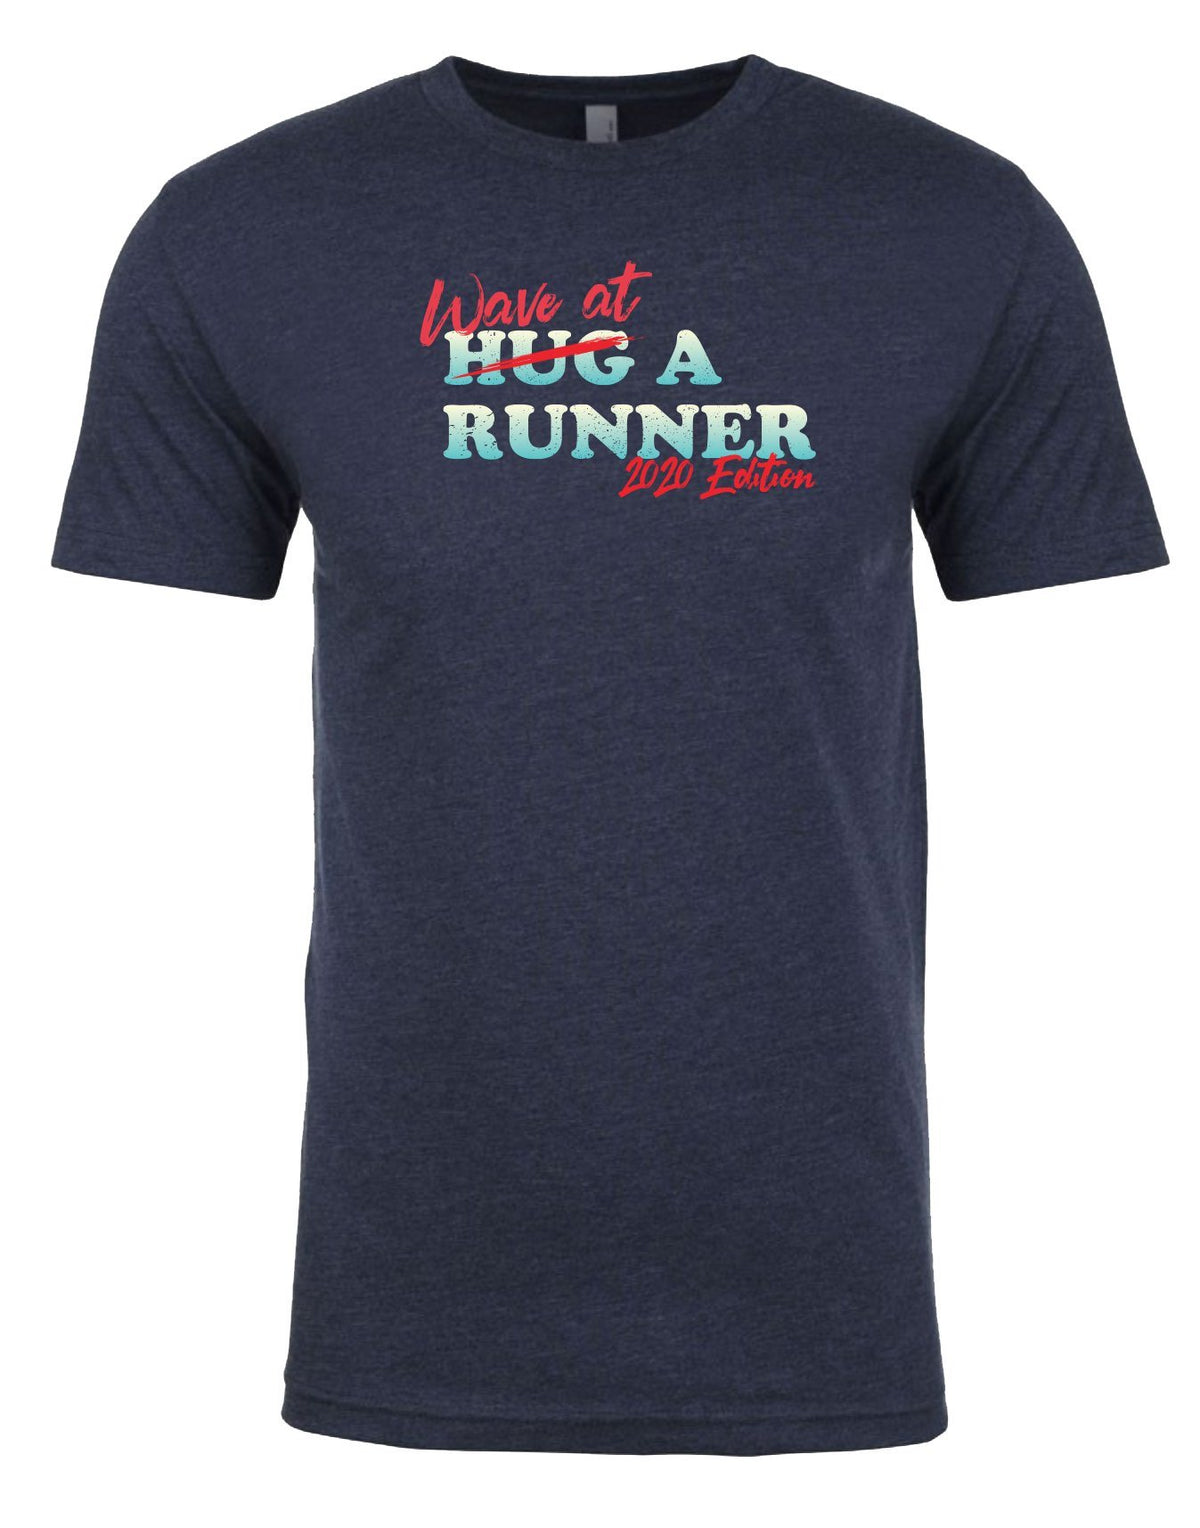 2020 Wave At A Runner 5K for $5K Shirt ONLY Registrations Run The Edge Store